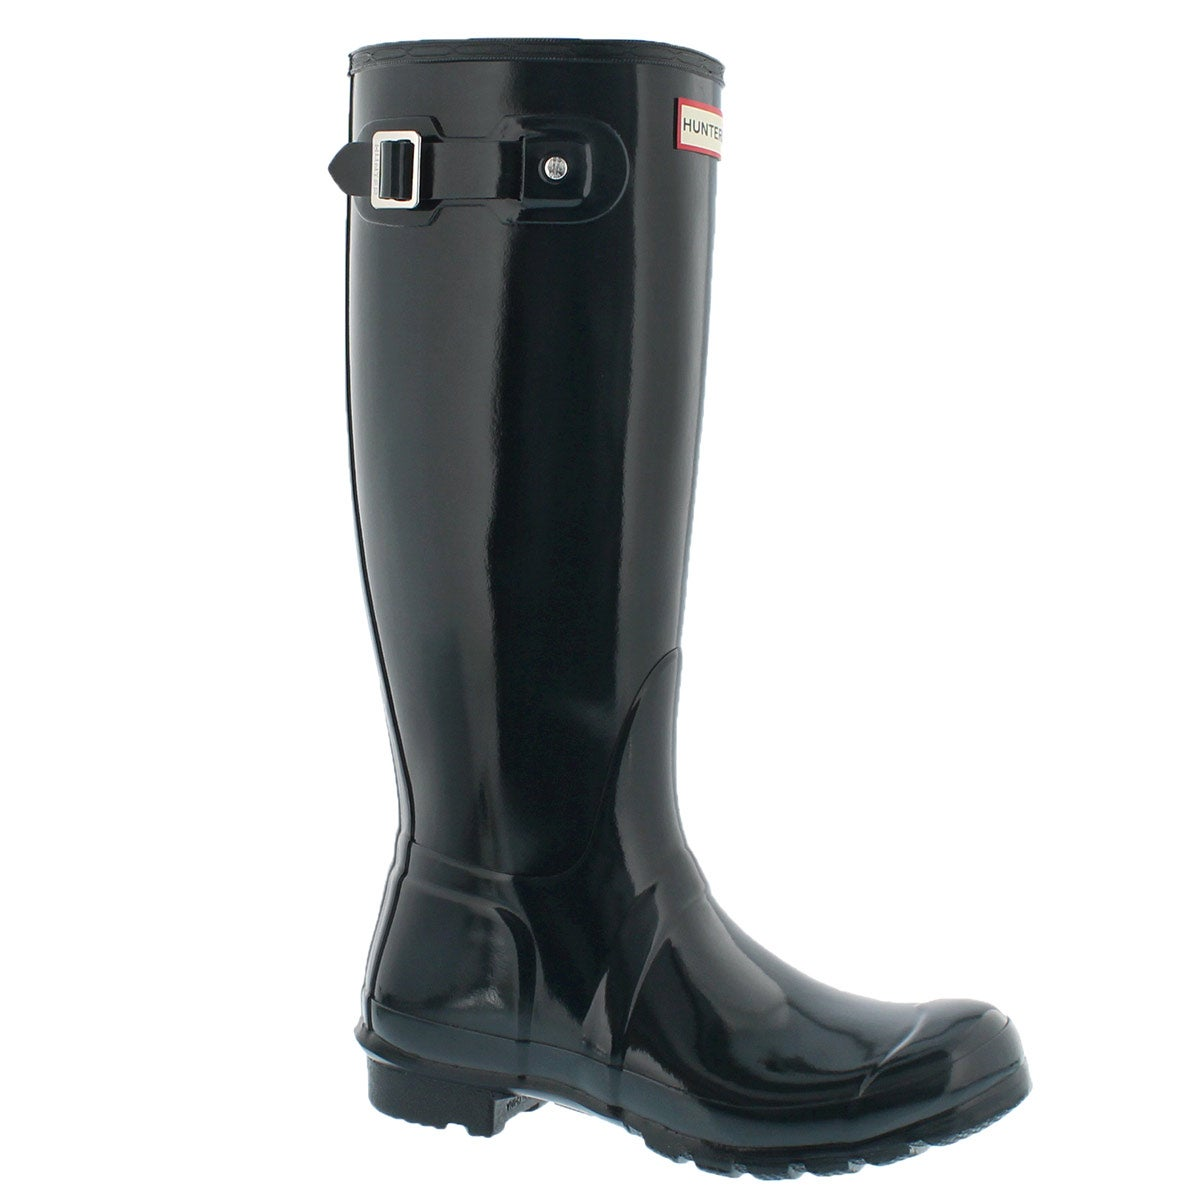 Lds Original Tall Gloss ocean rain boot